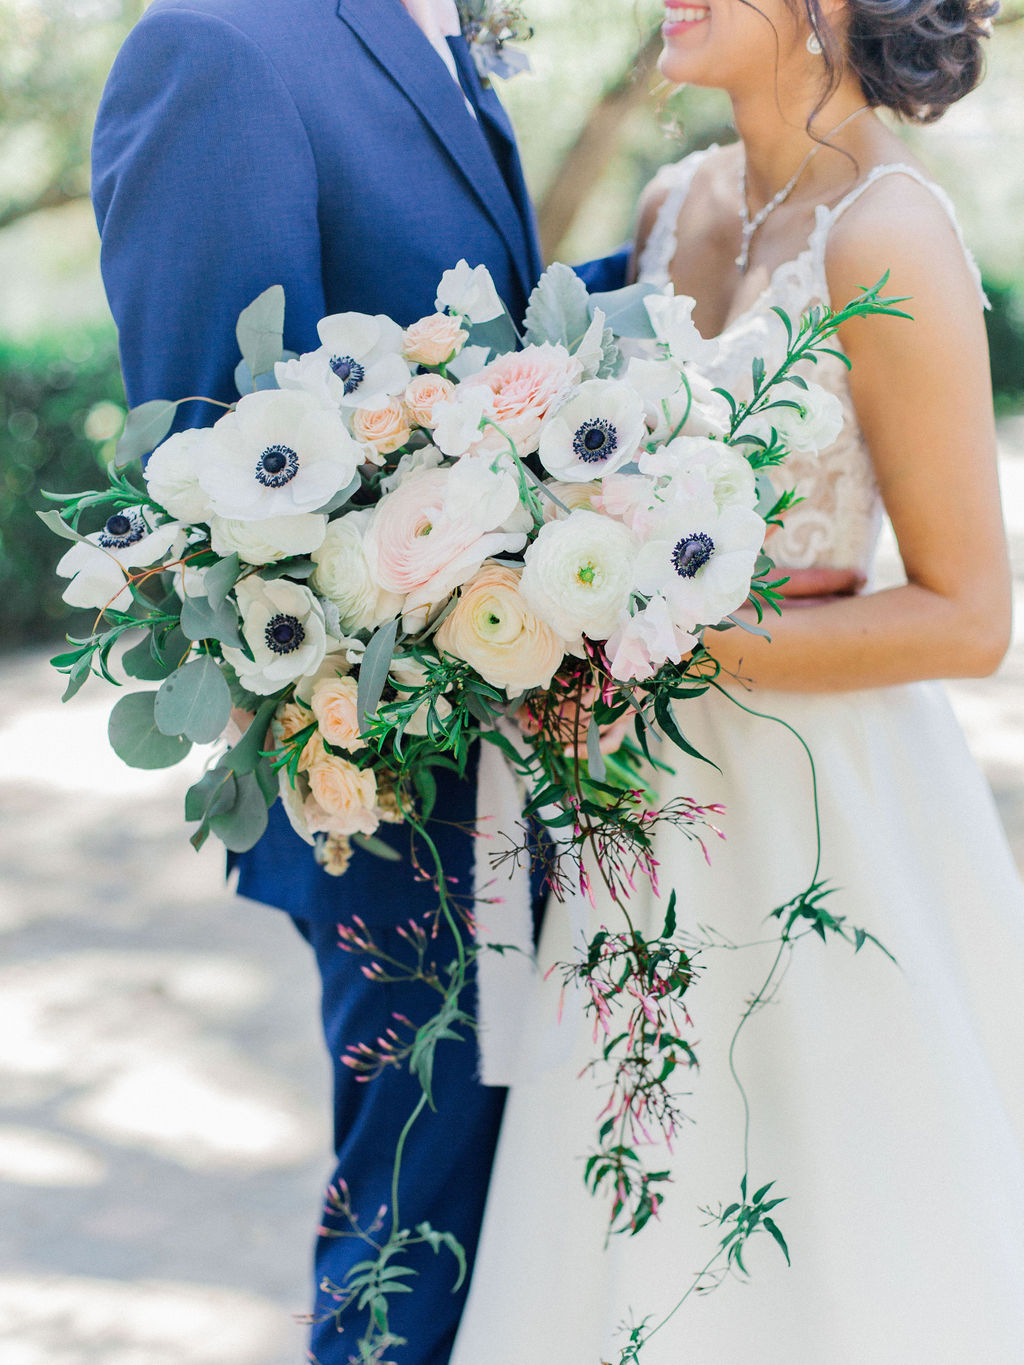 Lauren + Argenis - View Gallery